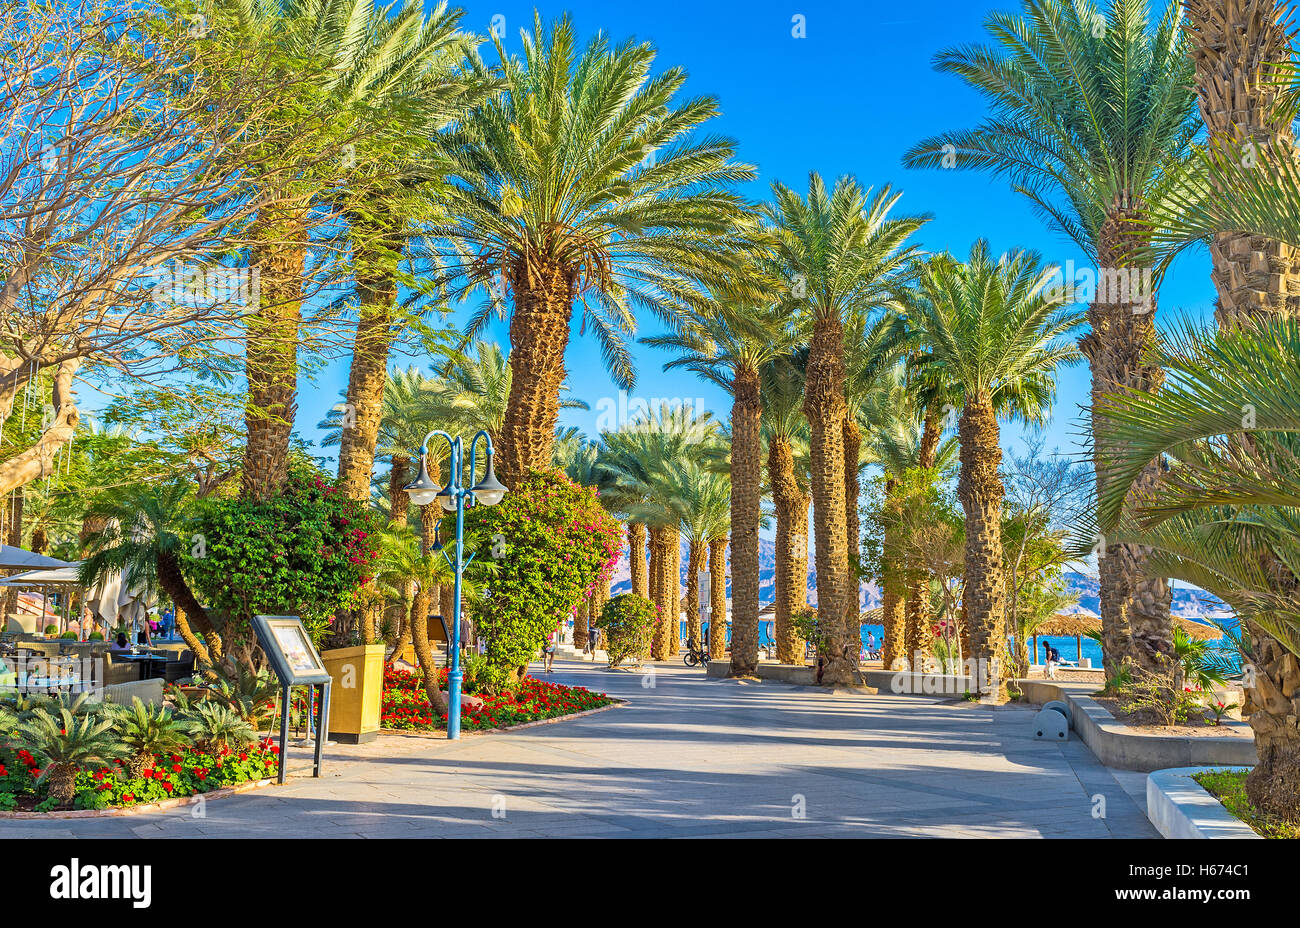 Palm Beach Gardens Stock Photos & Palm Beach Gardens Stock Images ...